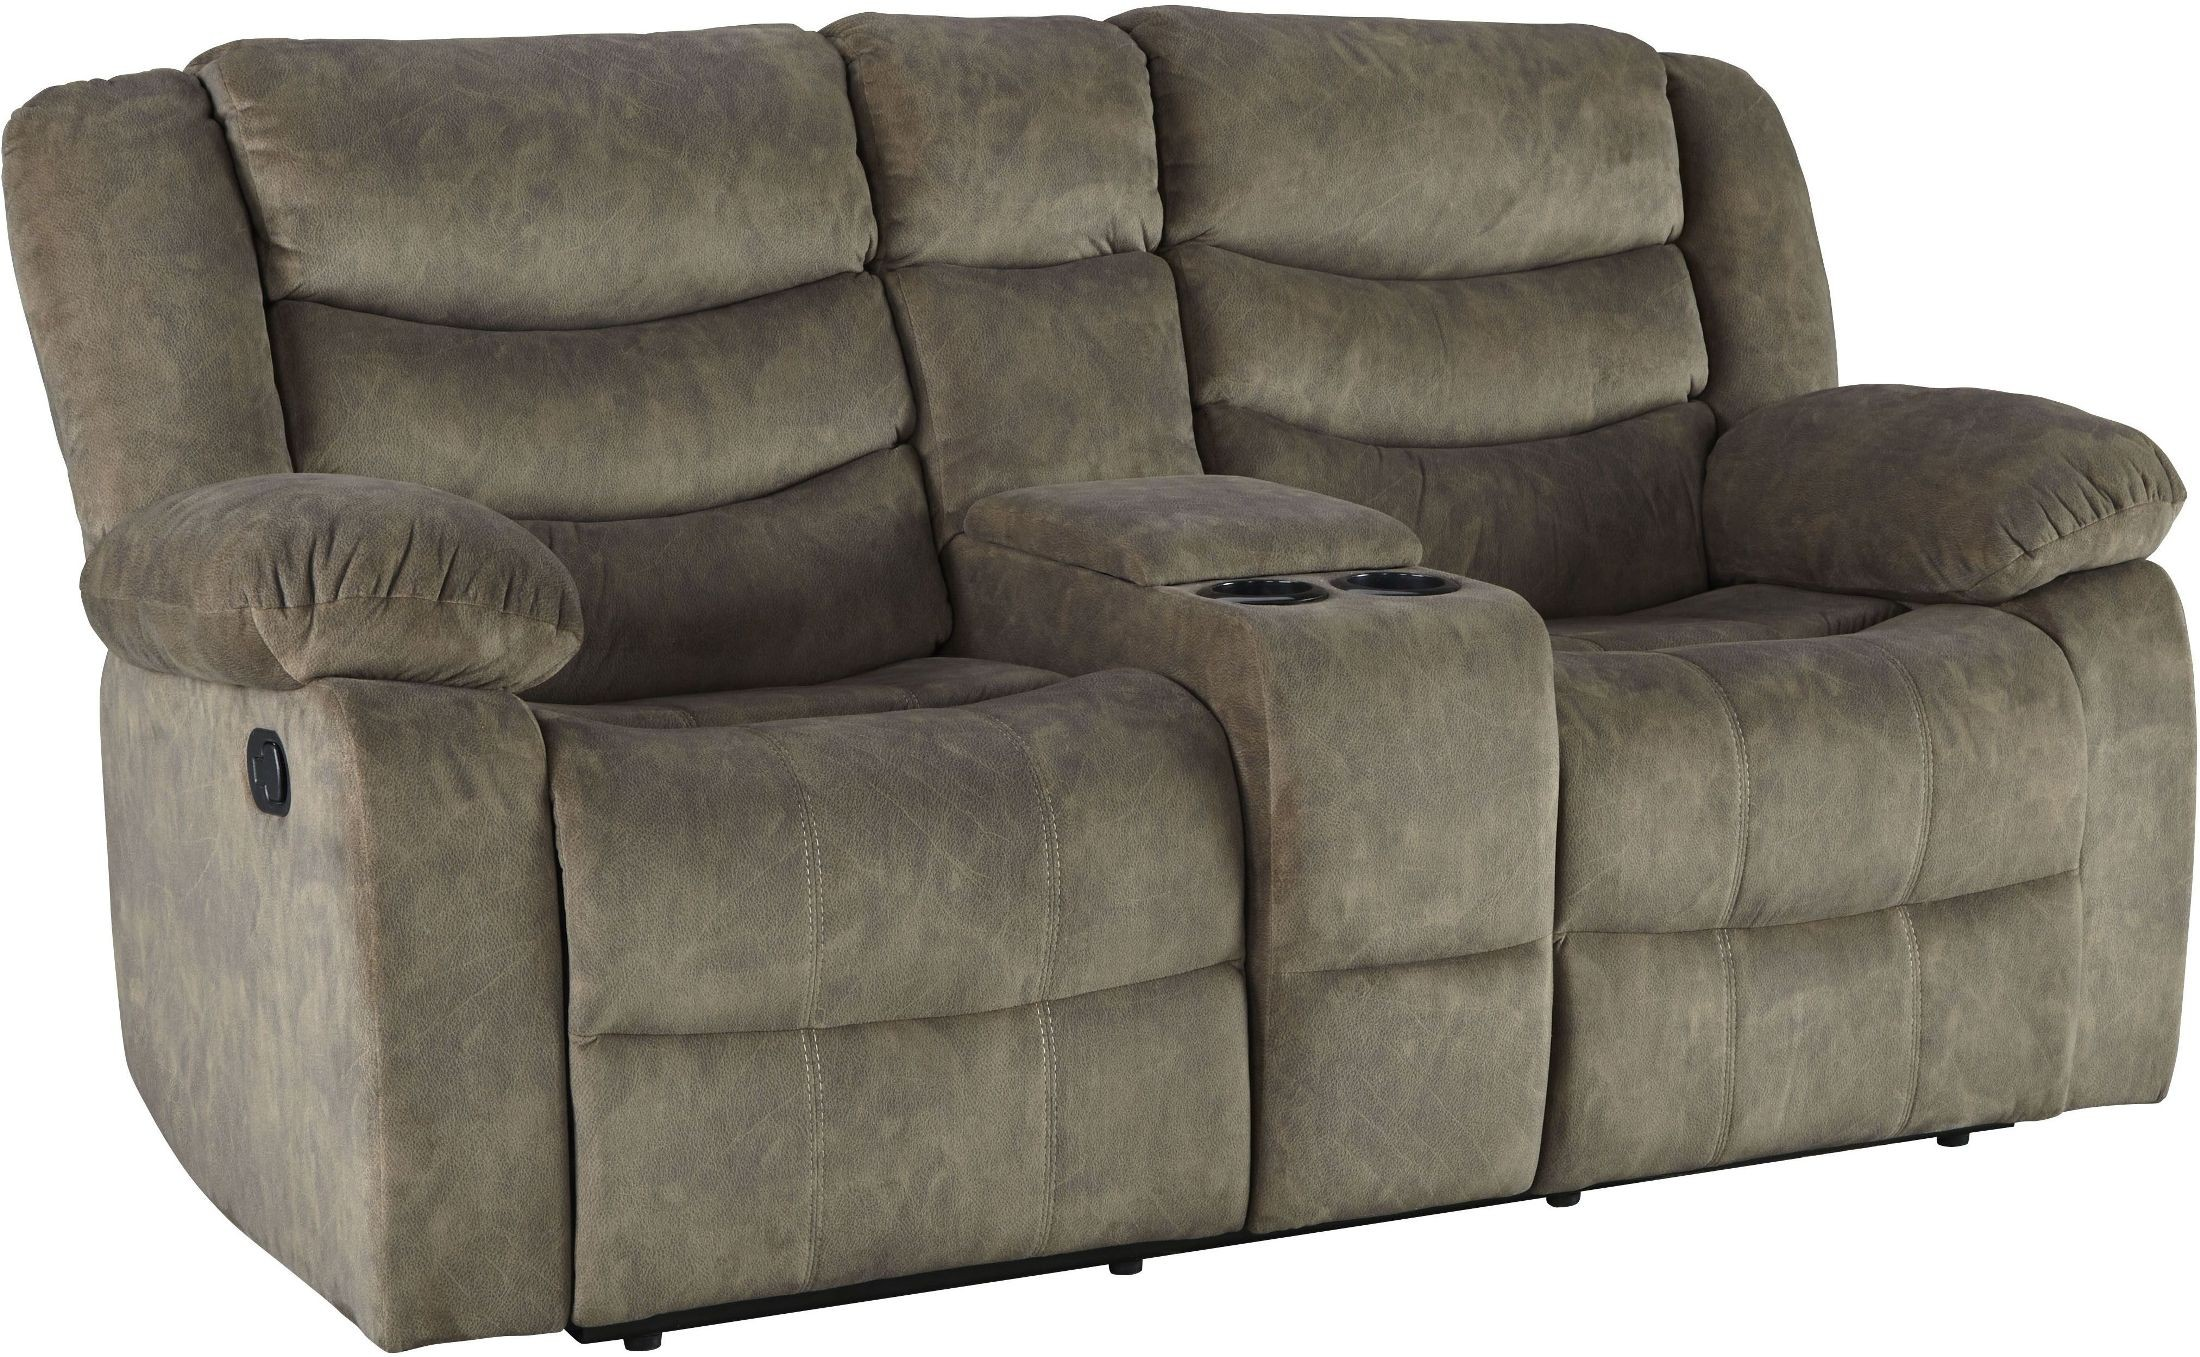 tan reclining console item number elijah loveseat with home morris furnishings products